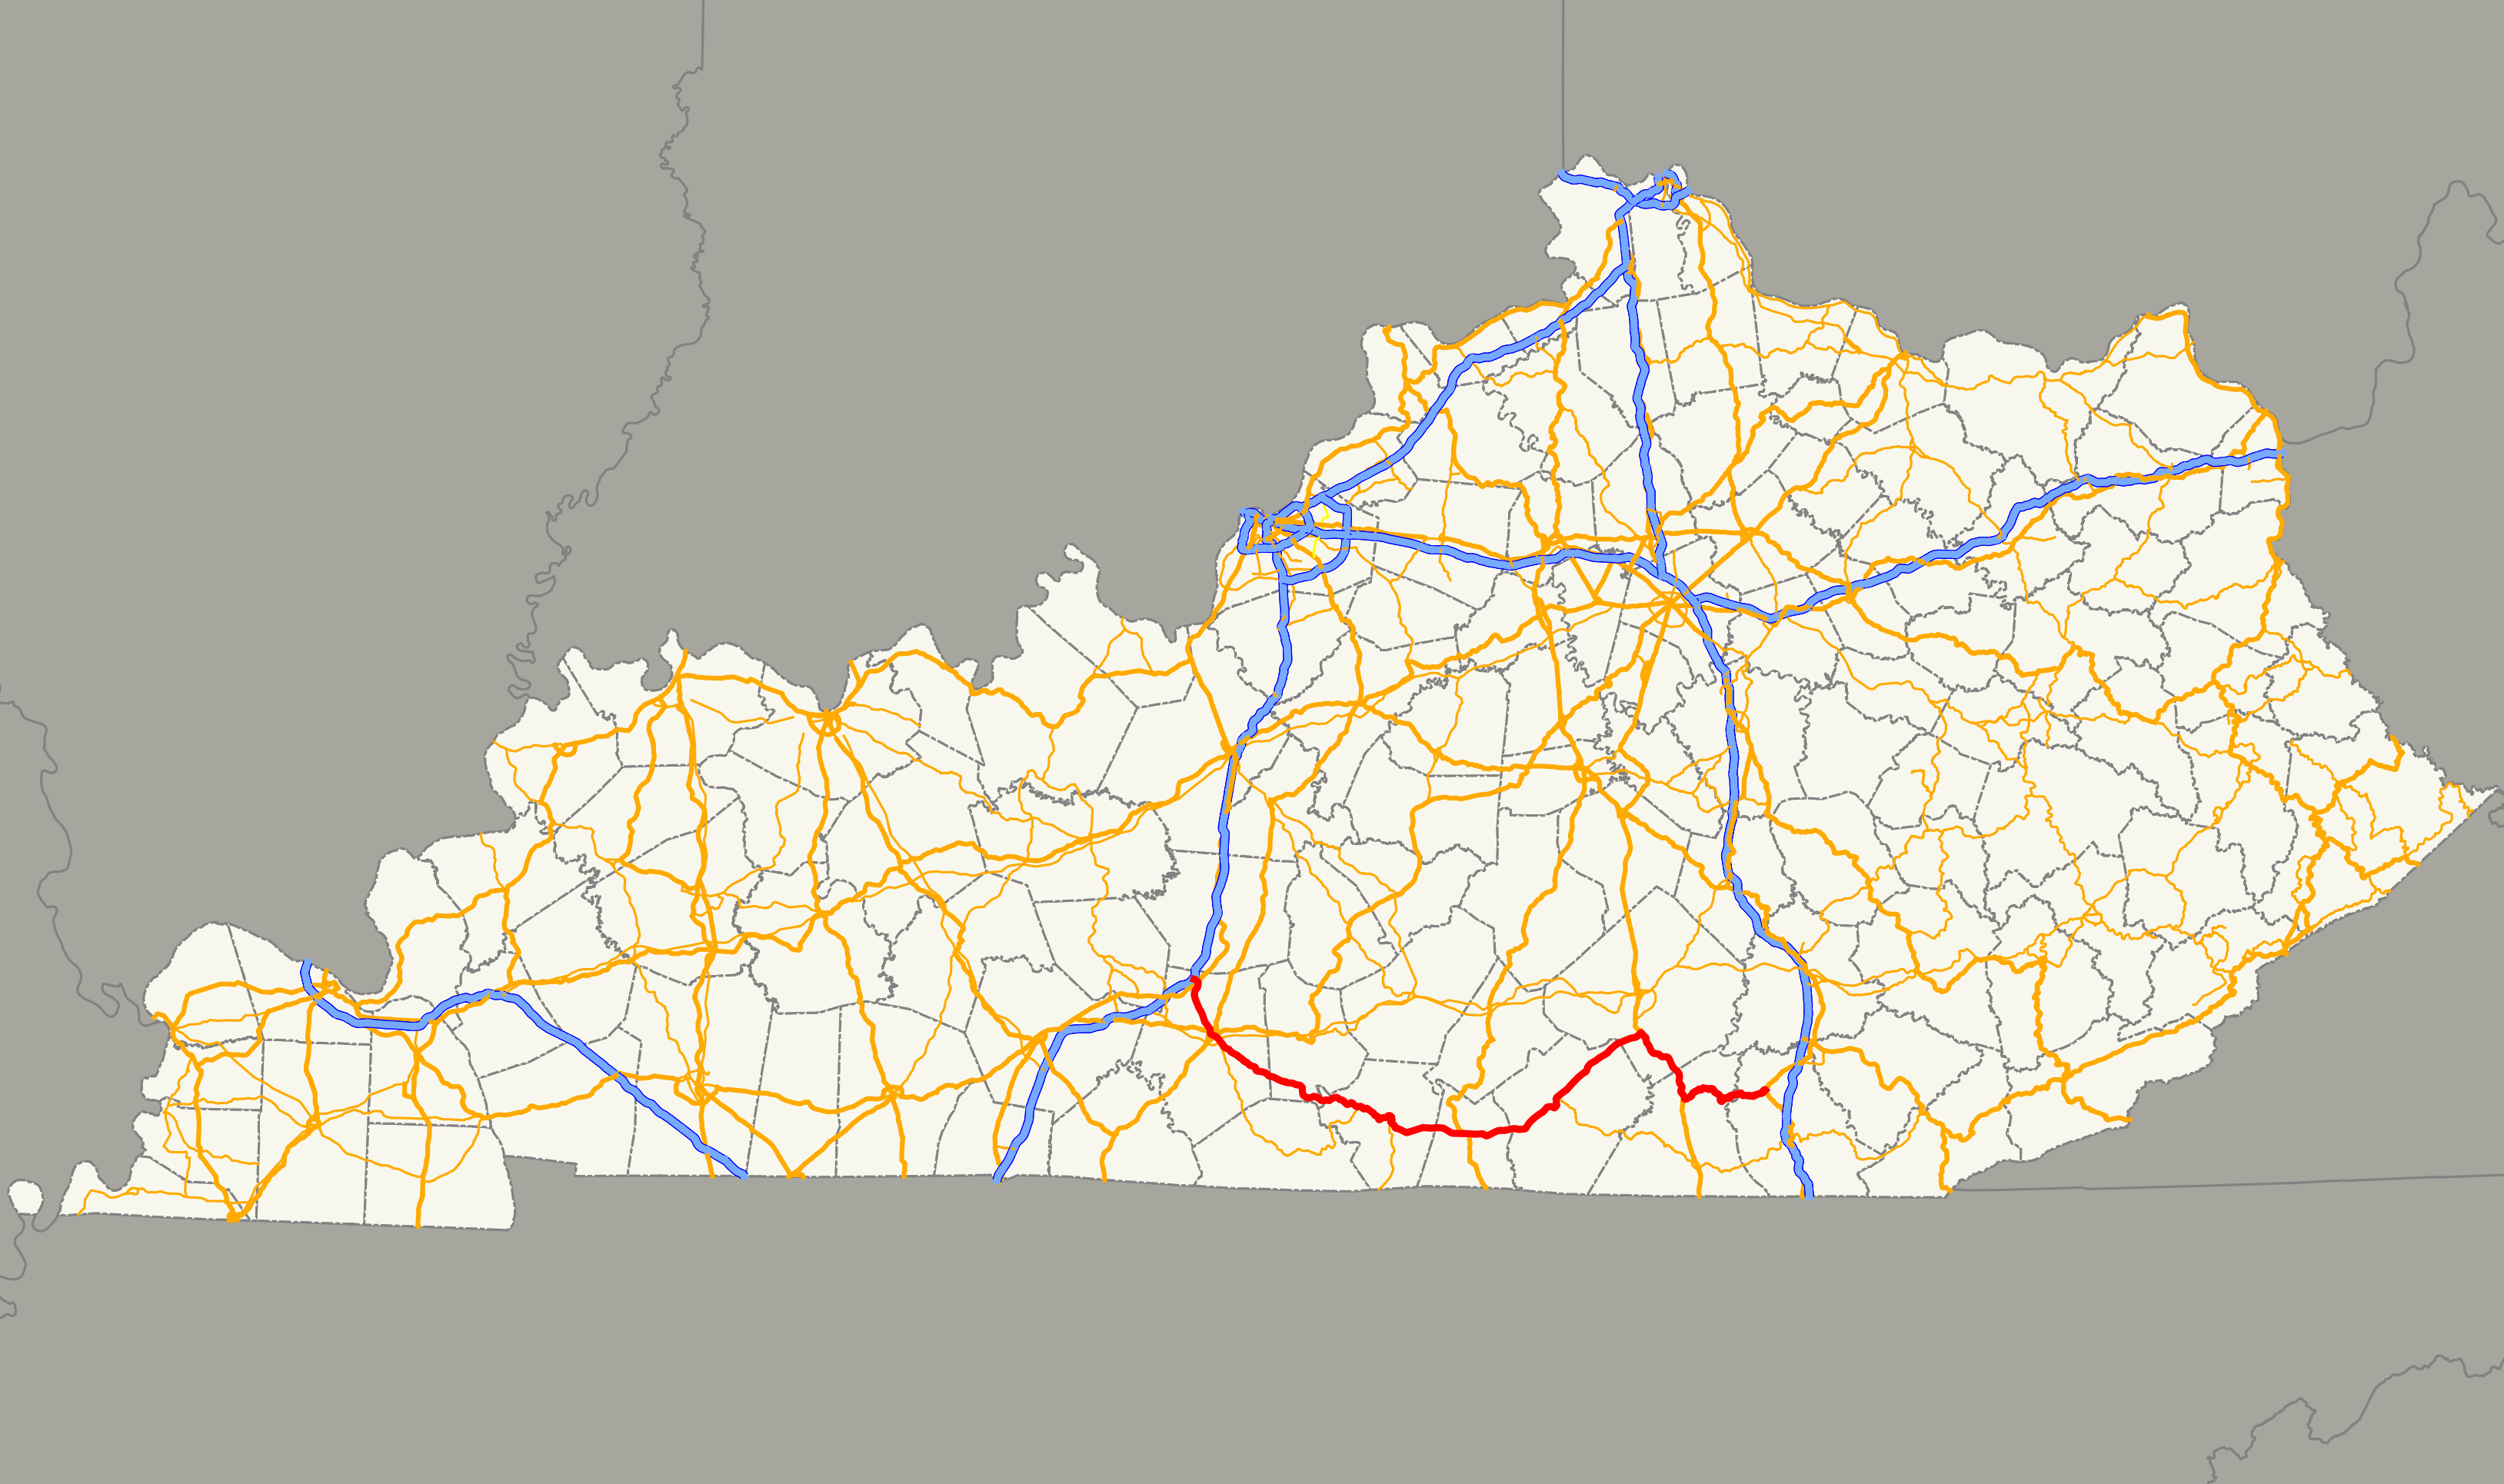 Kentucky Route 90 - Wikipedia on map of blue ridge parkway in virginia, map of bluegrass parkway, road maps of muhlenberg county ky, map of i-75 in ky, city of campton ky, map of i-65 in ky, mountain towns in ky,